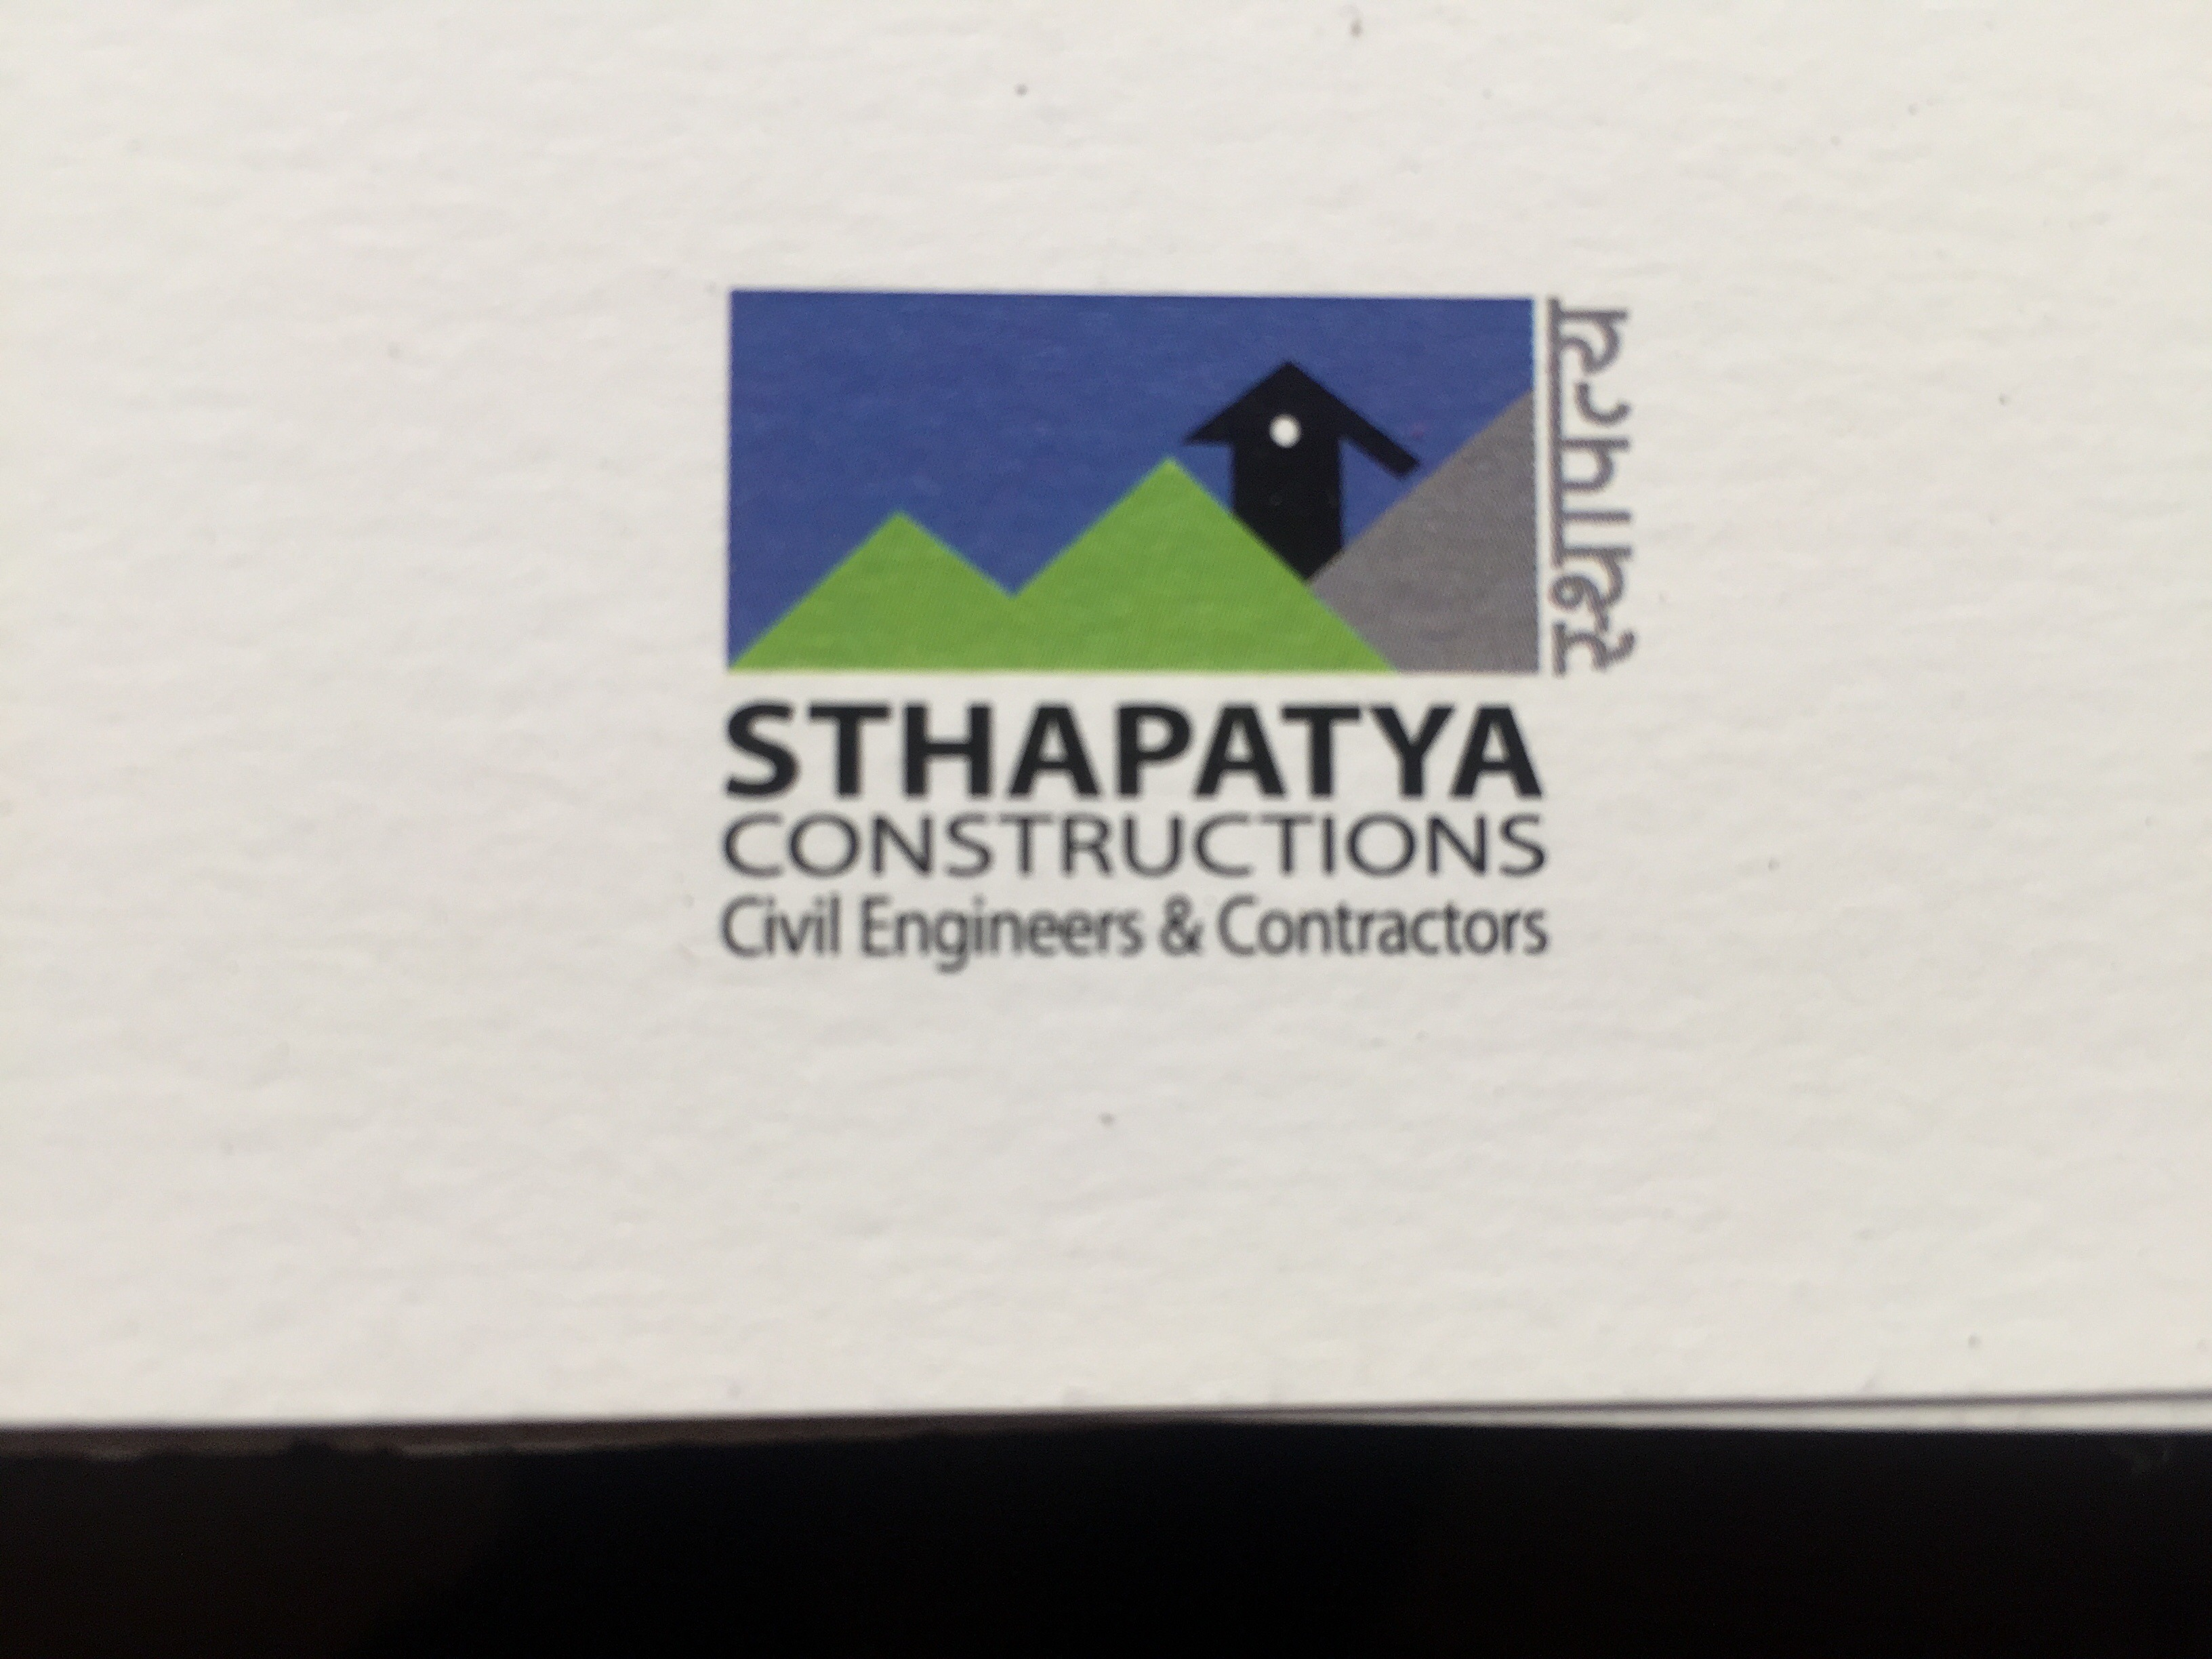 Sthapatya constructions